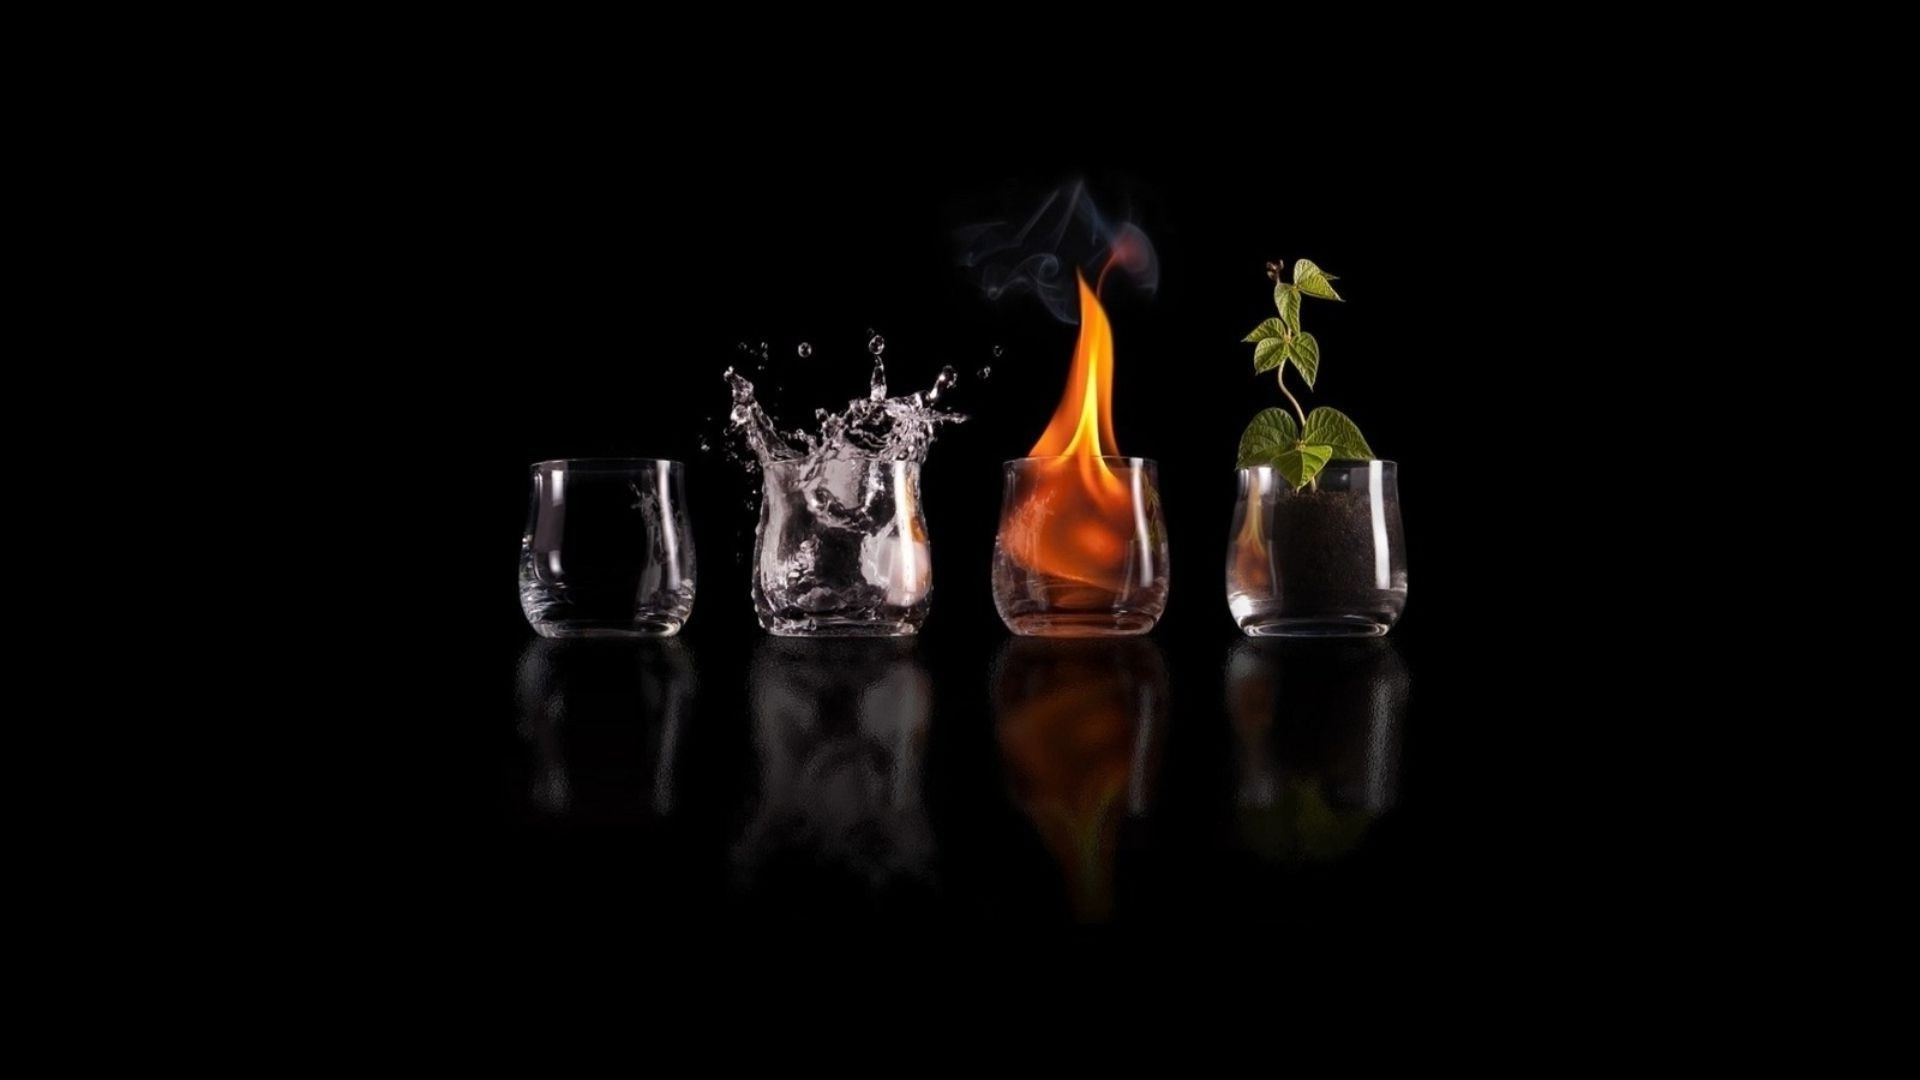 Cool Chemistry Wallpapers, 50 Best HD Backgrounds of Cool .